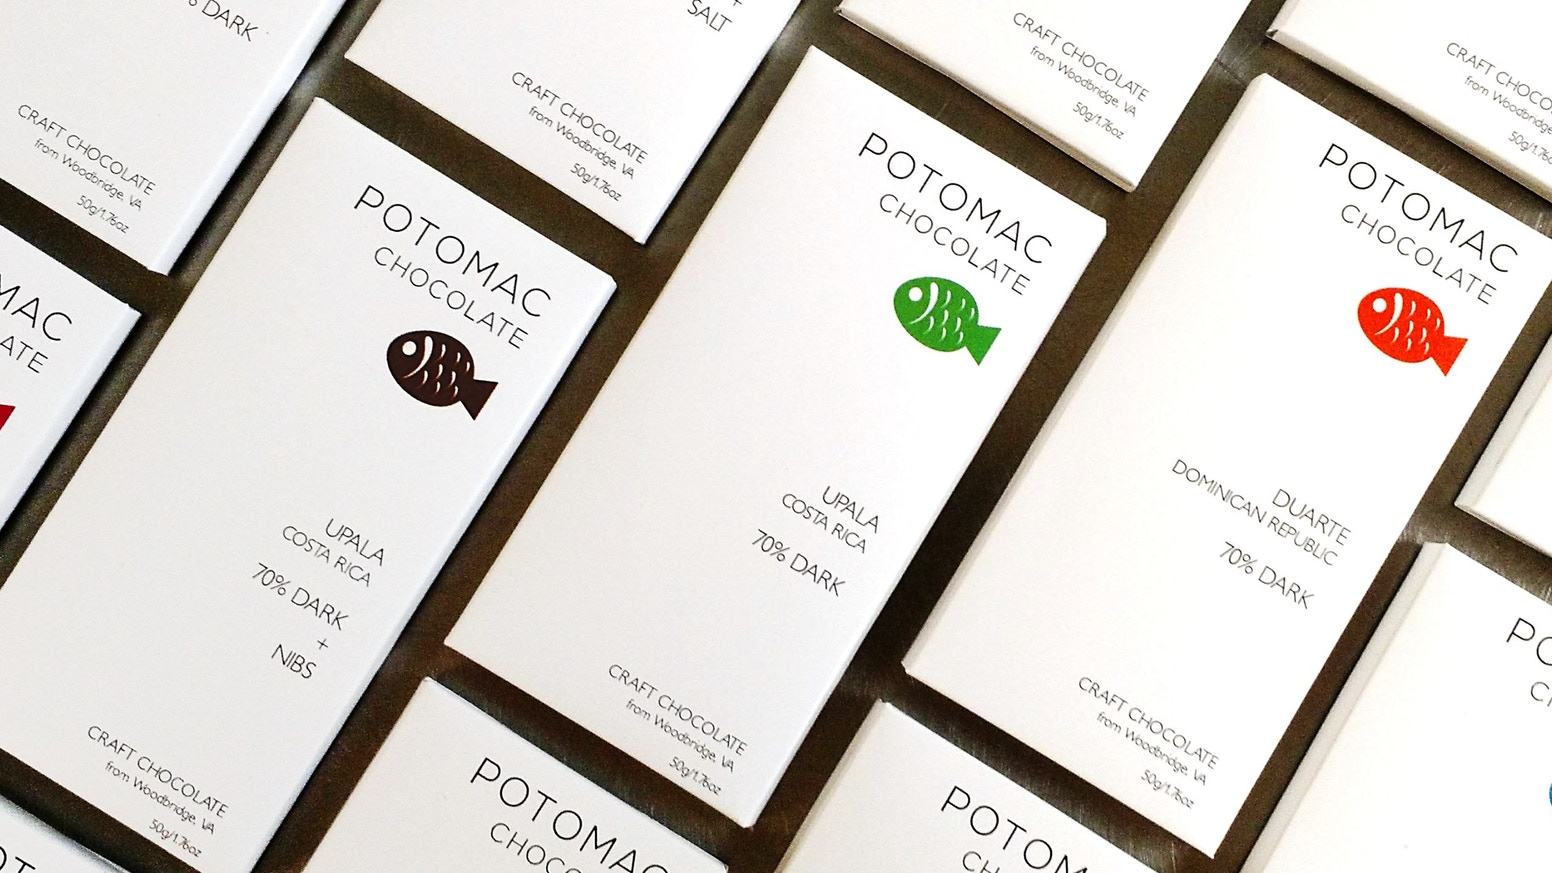 Join Potomac Chocolate on the Magnolia Terrace at Carlyle House Historic Park in Alexandria, Virginia for an evening of locally made chocolates. Details...